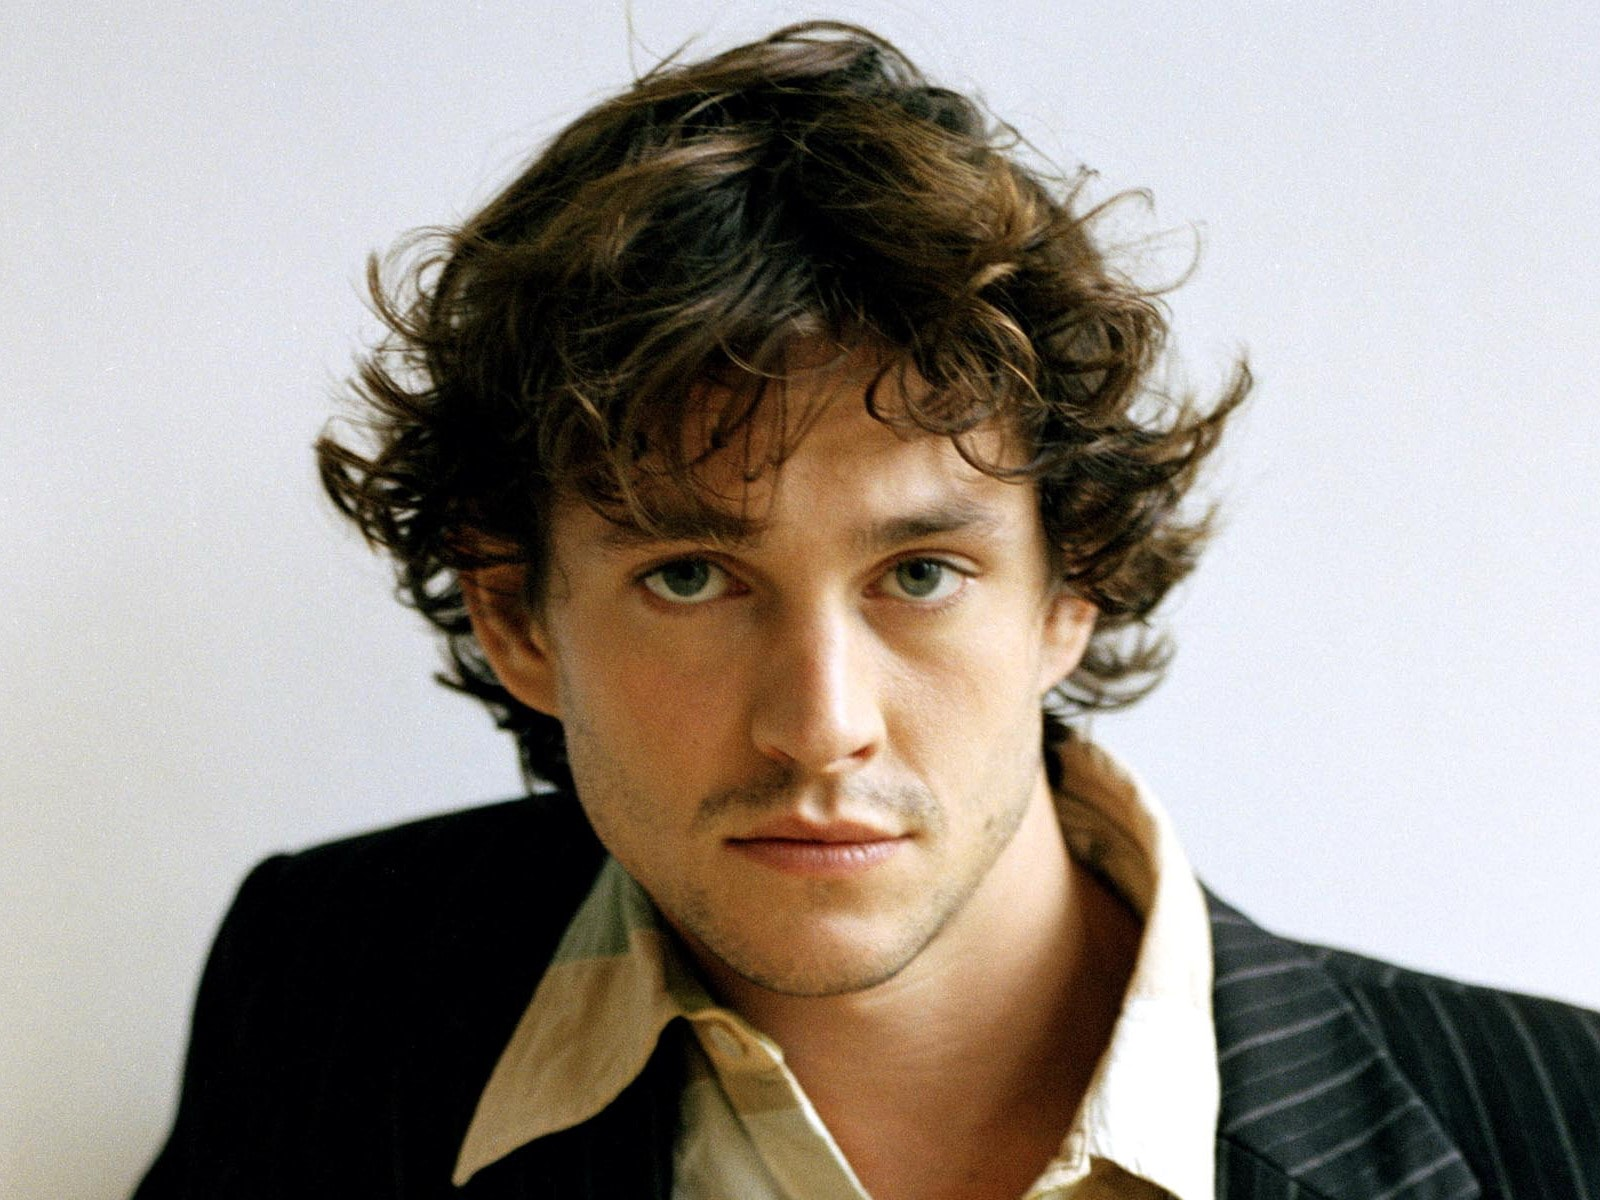 Hugh Dancy Wallpapers